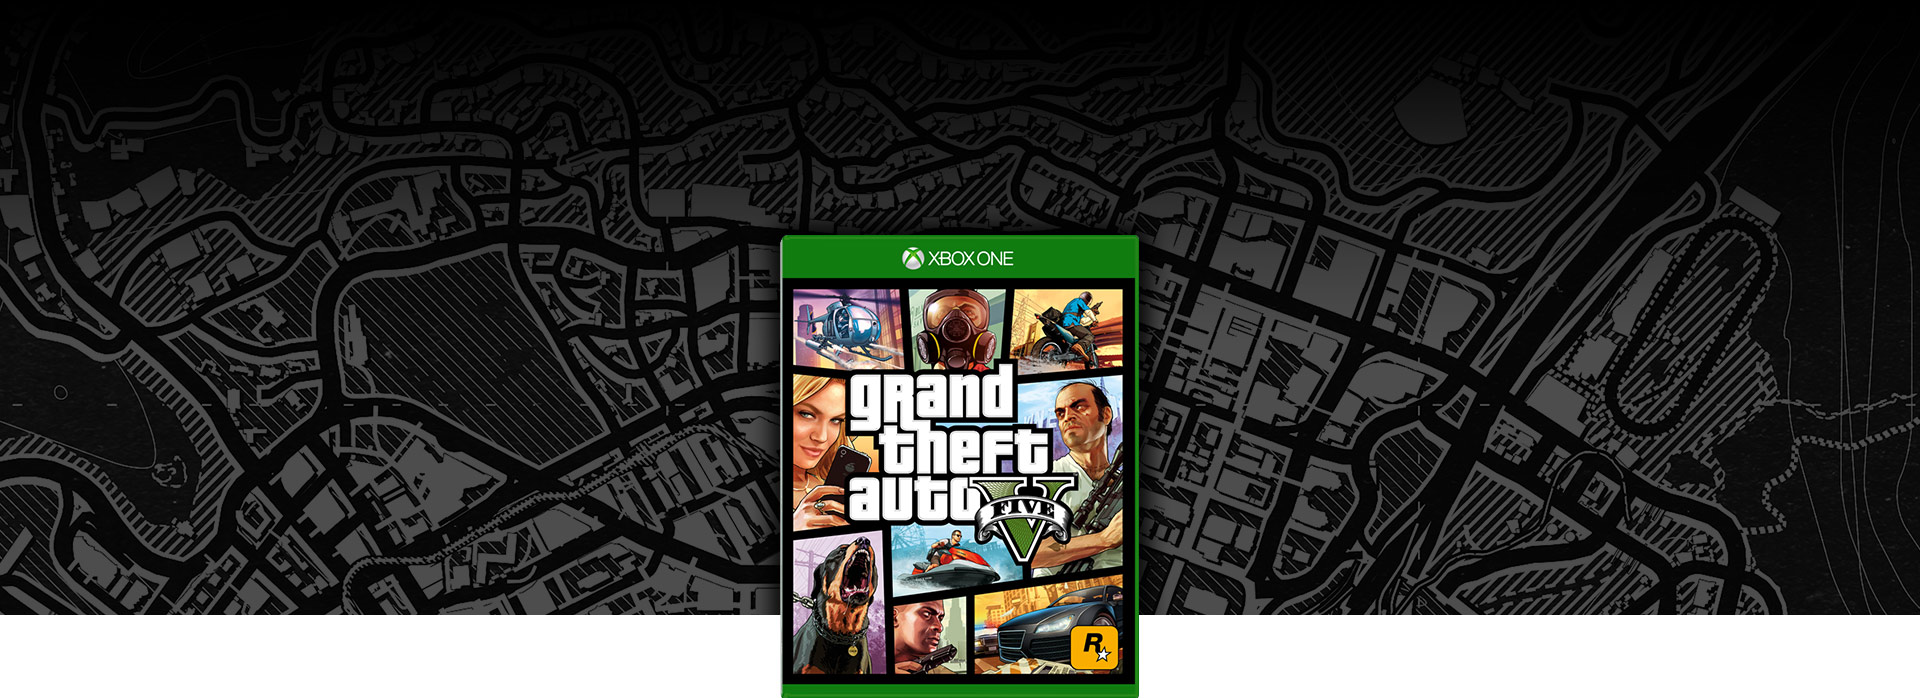 gta kod download